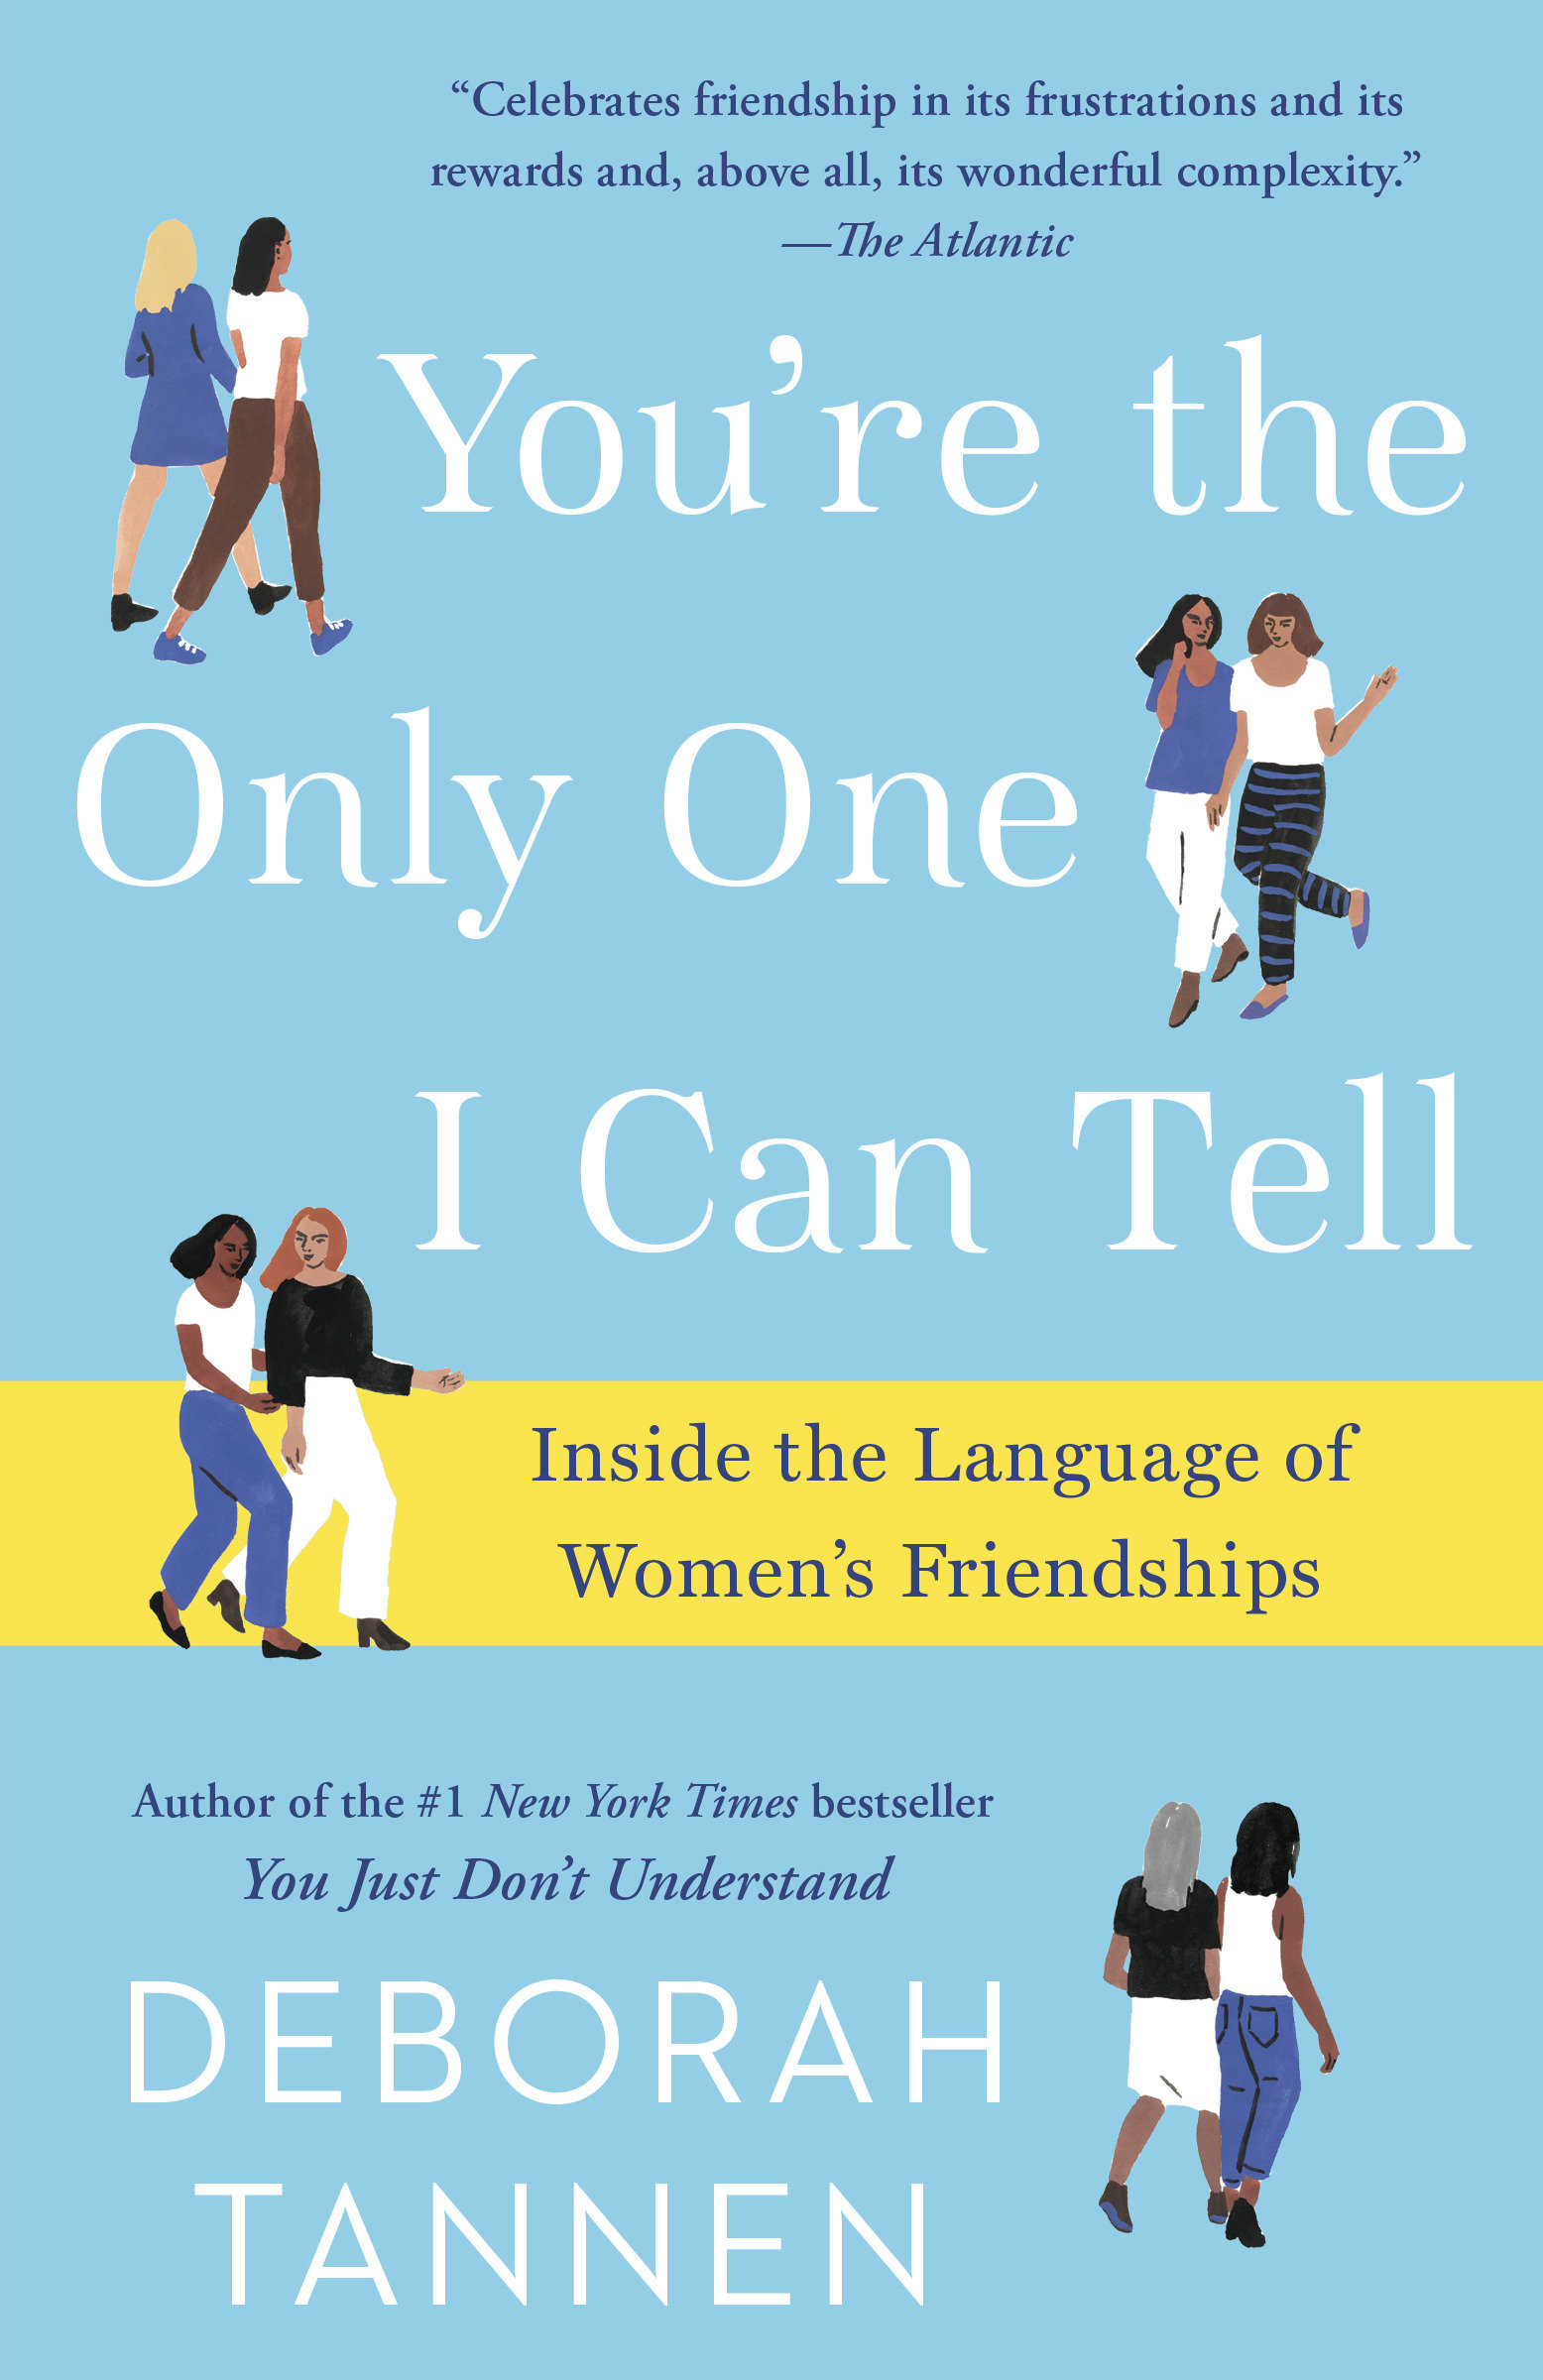 You're the Only One I Can Tell Inside the Language of Women's Friendships